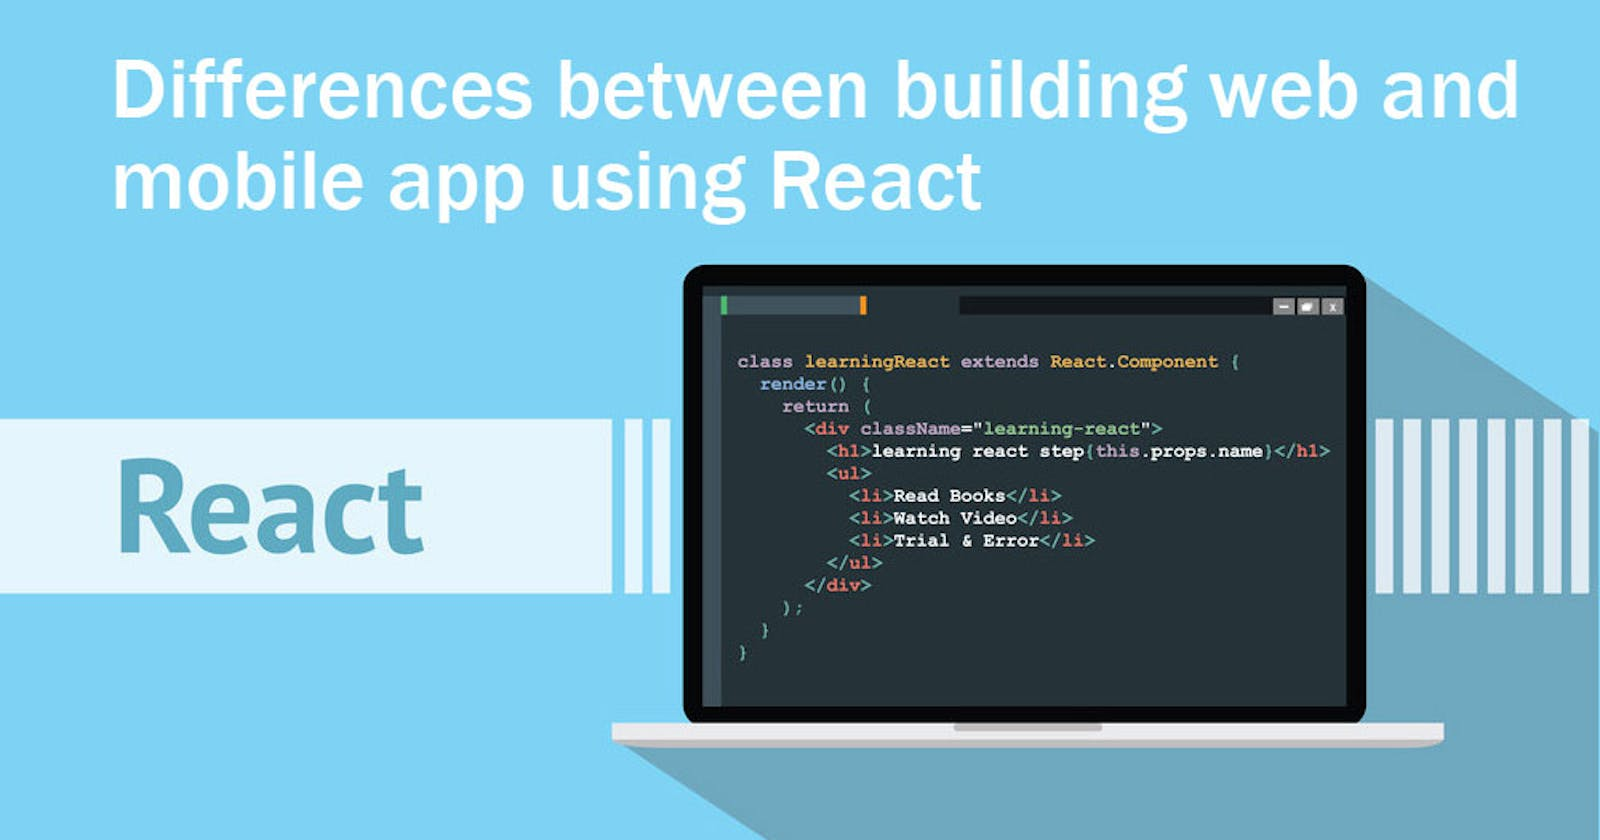 What is the difference between building web and mobile applications using React?